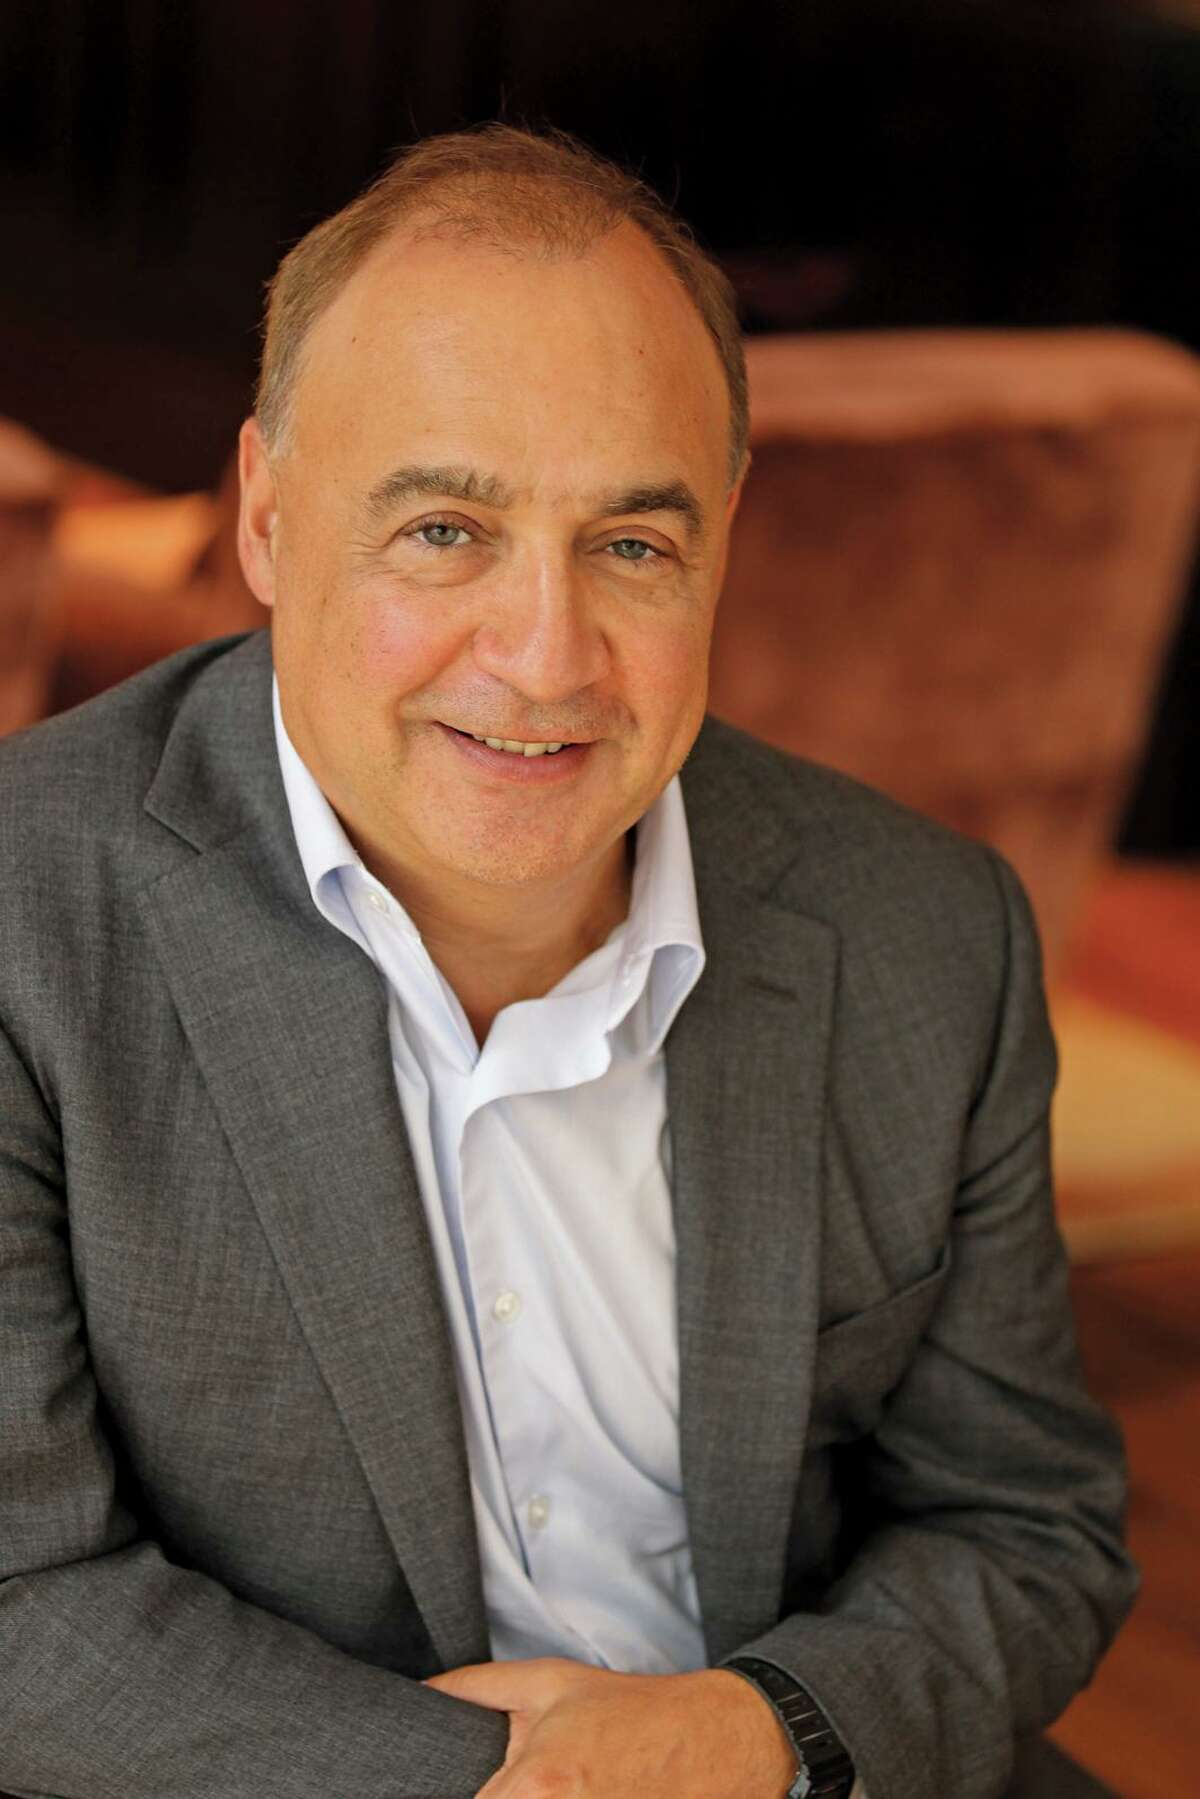 Len Blavatnik, a Ukraine-born business executive is worth more than $18 billion according to Forbes, through his holding company, Access Industries.